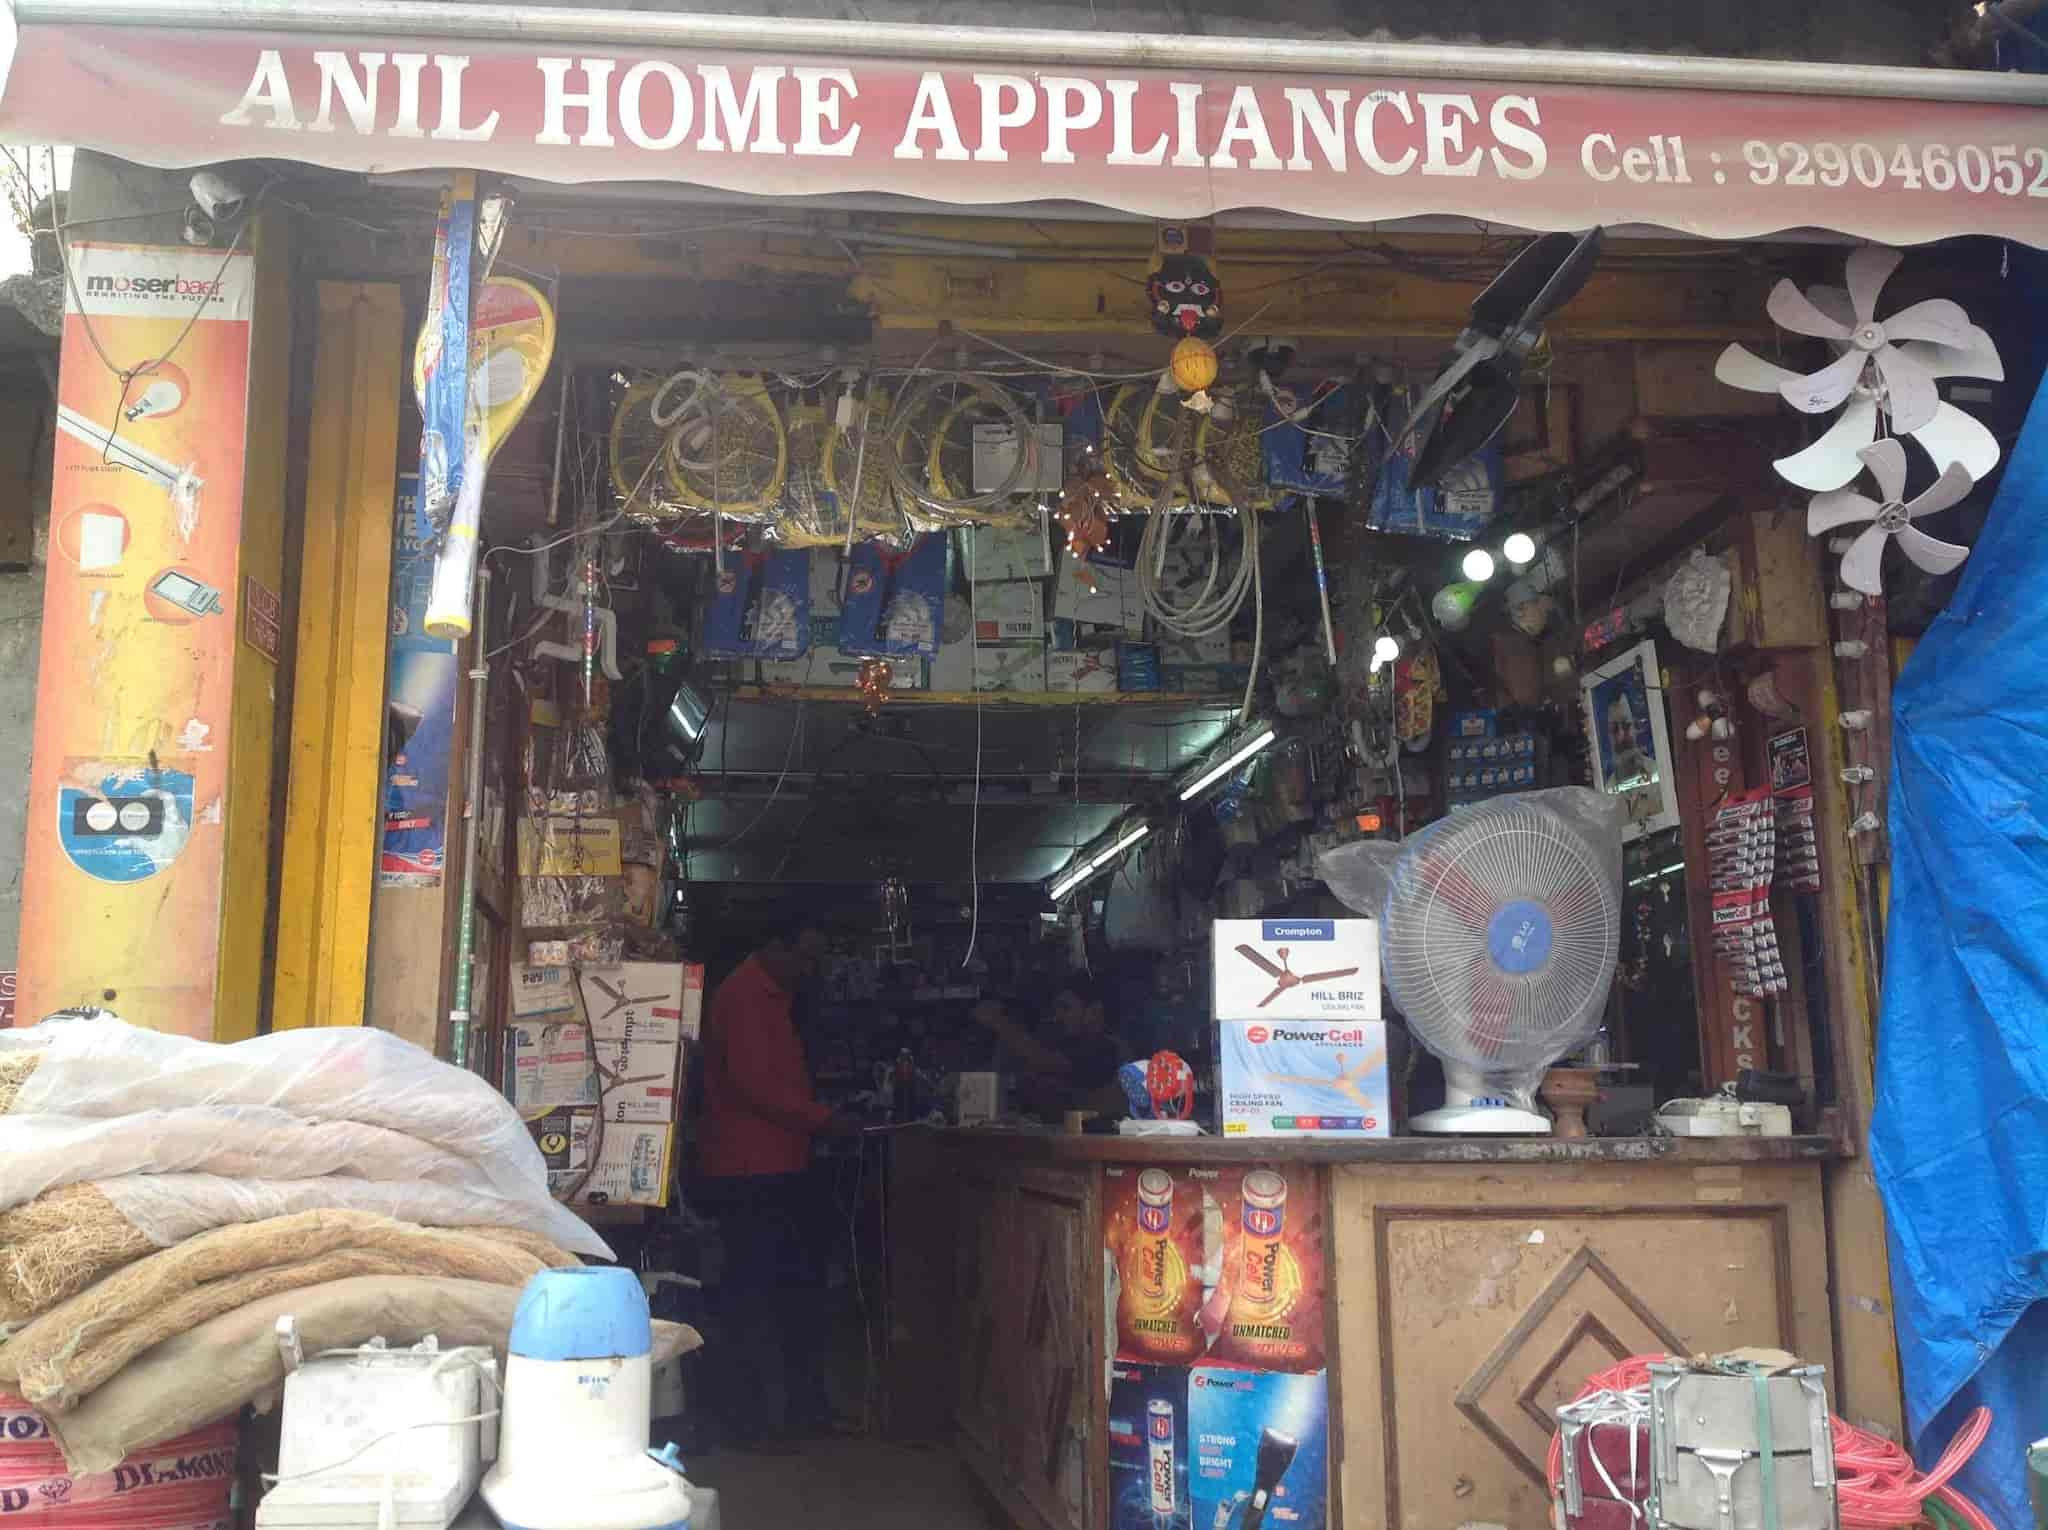 anil home appliances photos trimulgherry hyderabad pictures rh justdial com anil gomes anil gomez